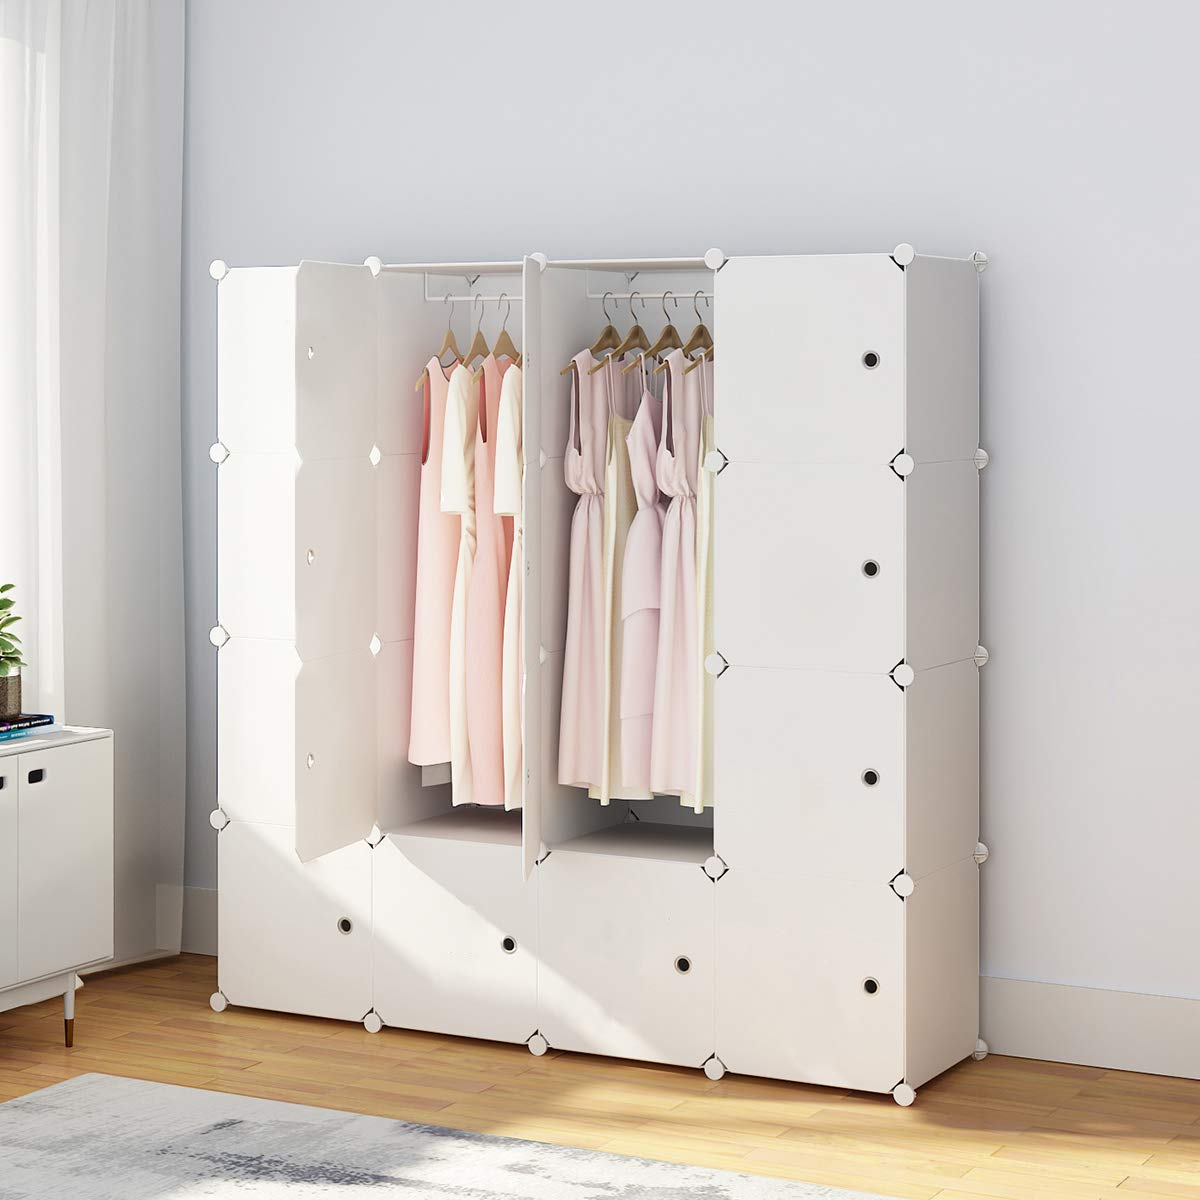 KOUSI Portable Wardrobe Closet for Bedroom Clothes Armoire Dresser Multi-Use Cube Storage Organizer, White, 10 Cubes & 2 Hanging Sections